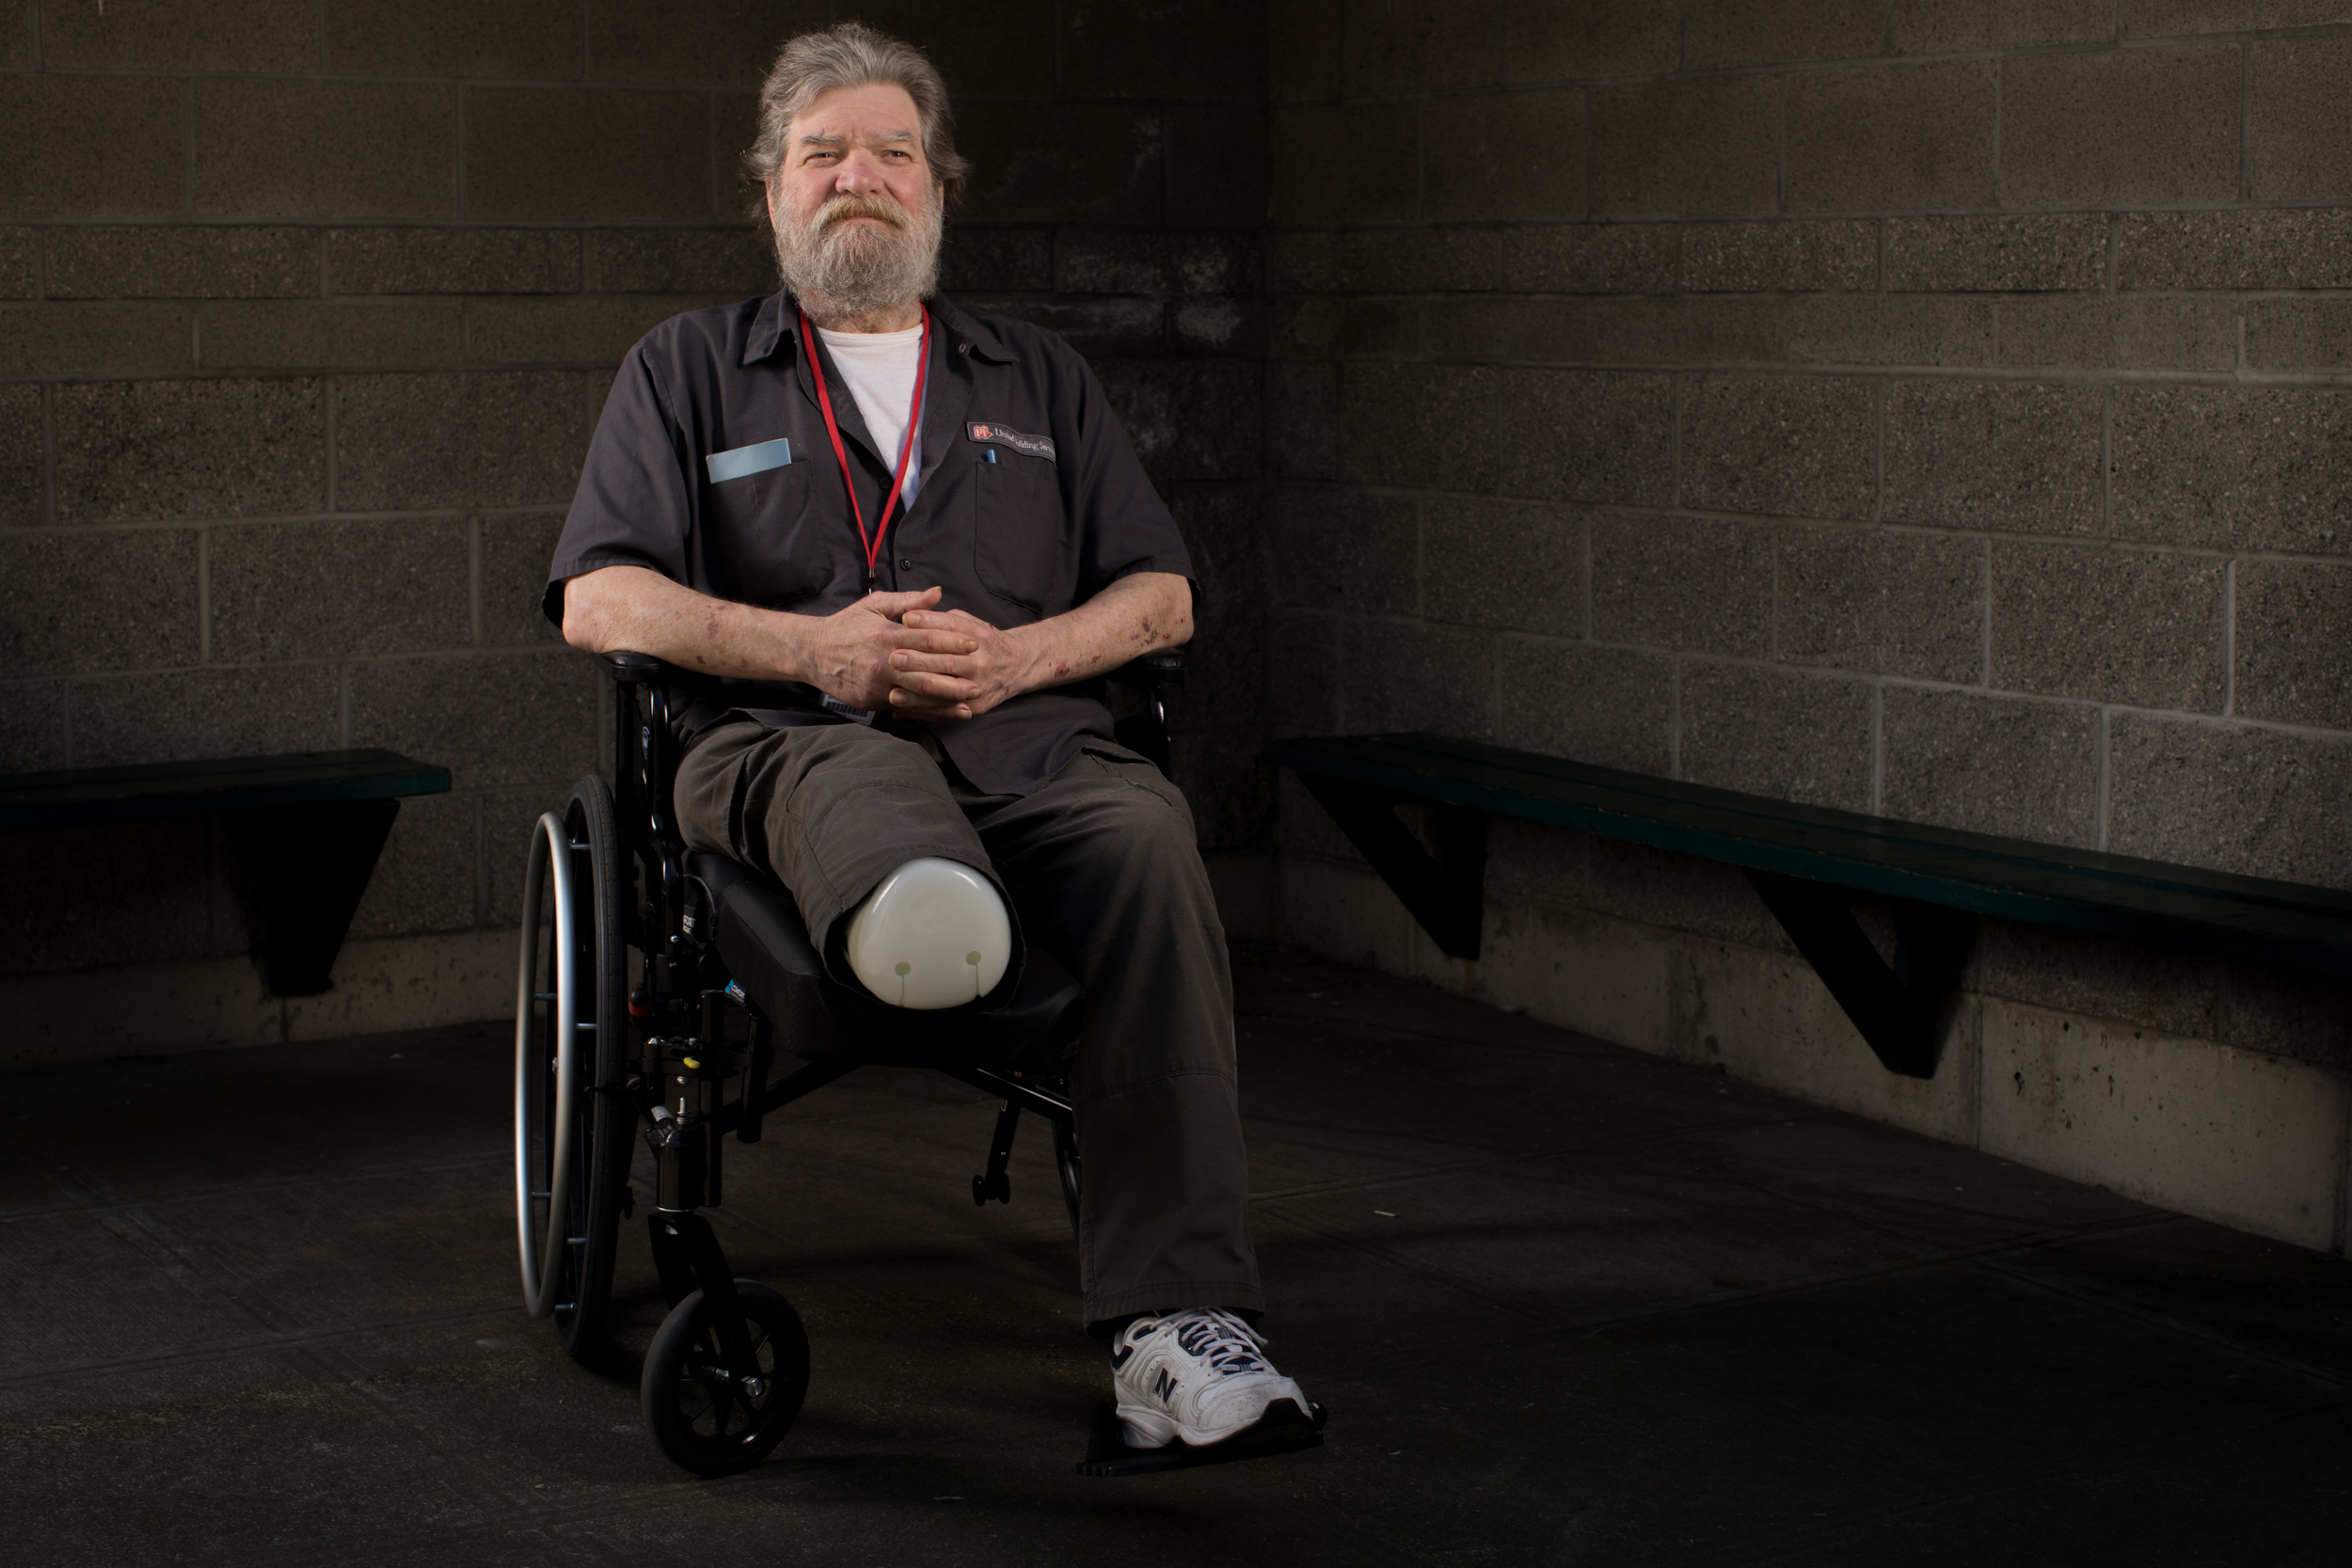 Veteran Lawrence Cruikshank, photographed at Salvation Army's William Booth Center in Seattle, May 24, 2018.